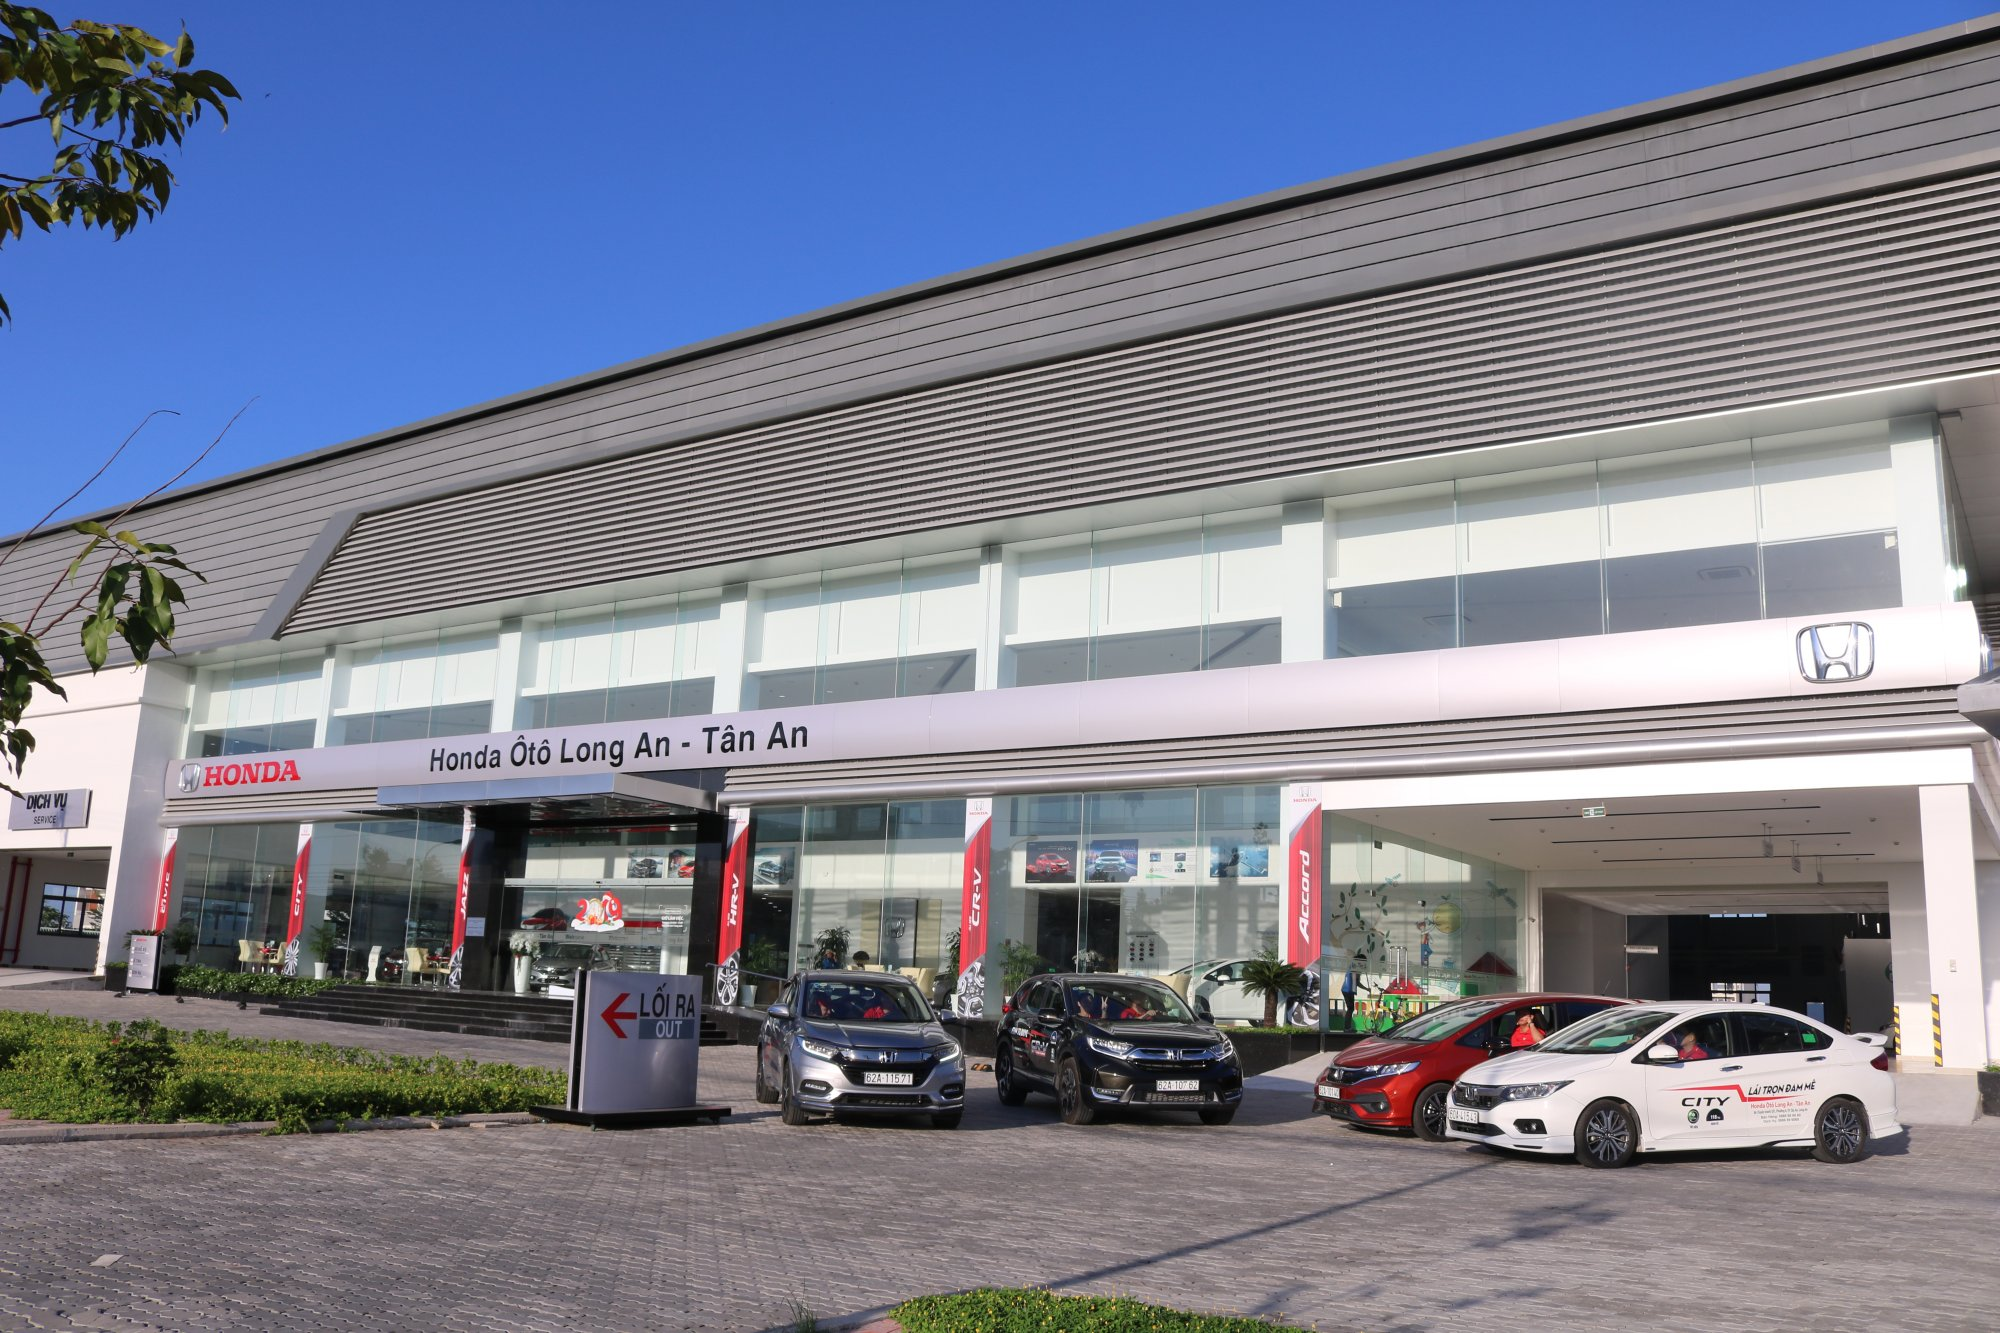 Honda Ôtô Long An